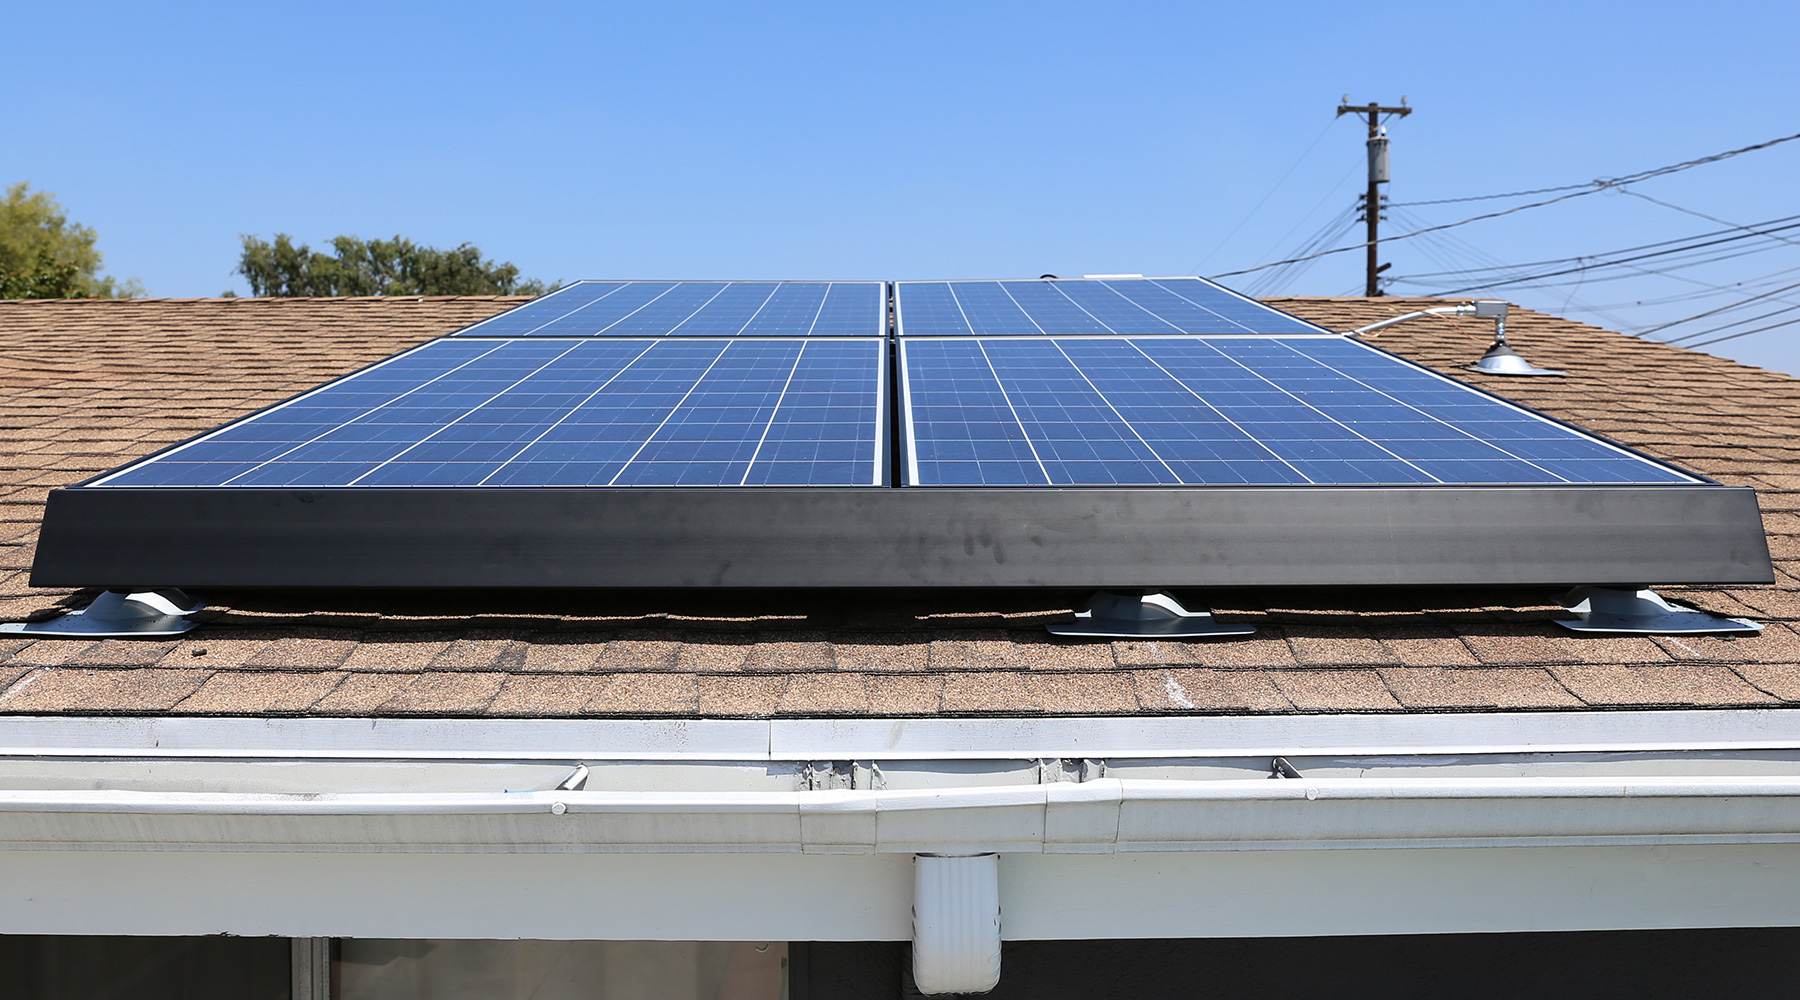 Ubiquiti Networks Solar Gateway Cells Produce Dc Electricity From Light Sunlight Contains Sunmax